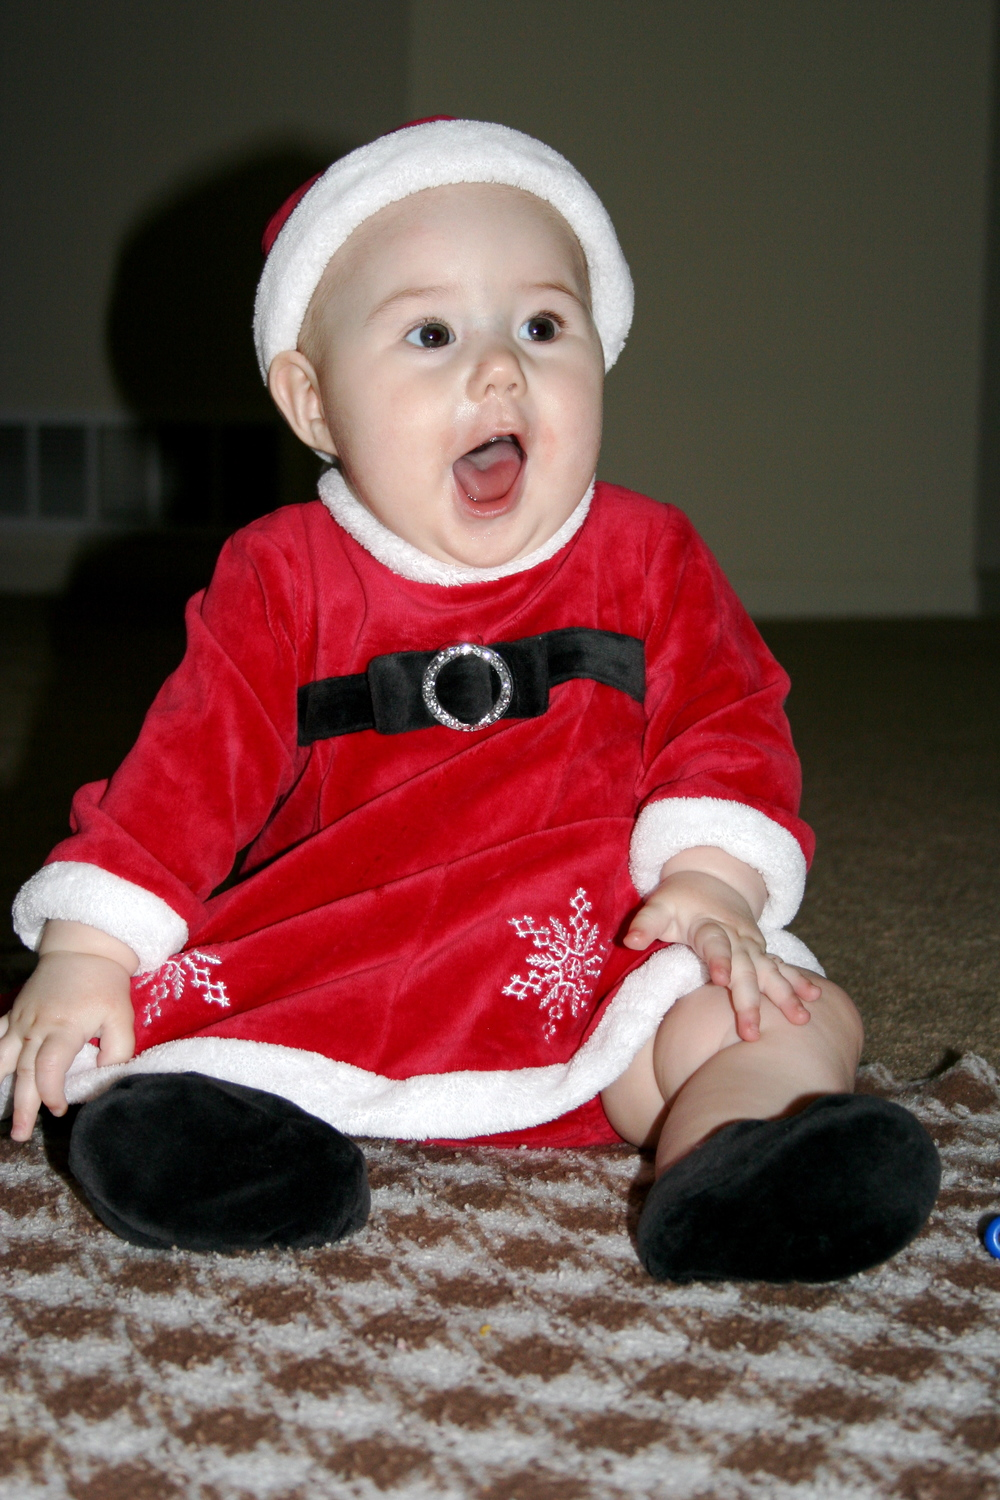 2008 - A Christmas picture of Audrey.